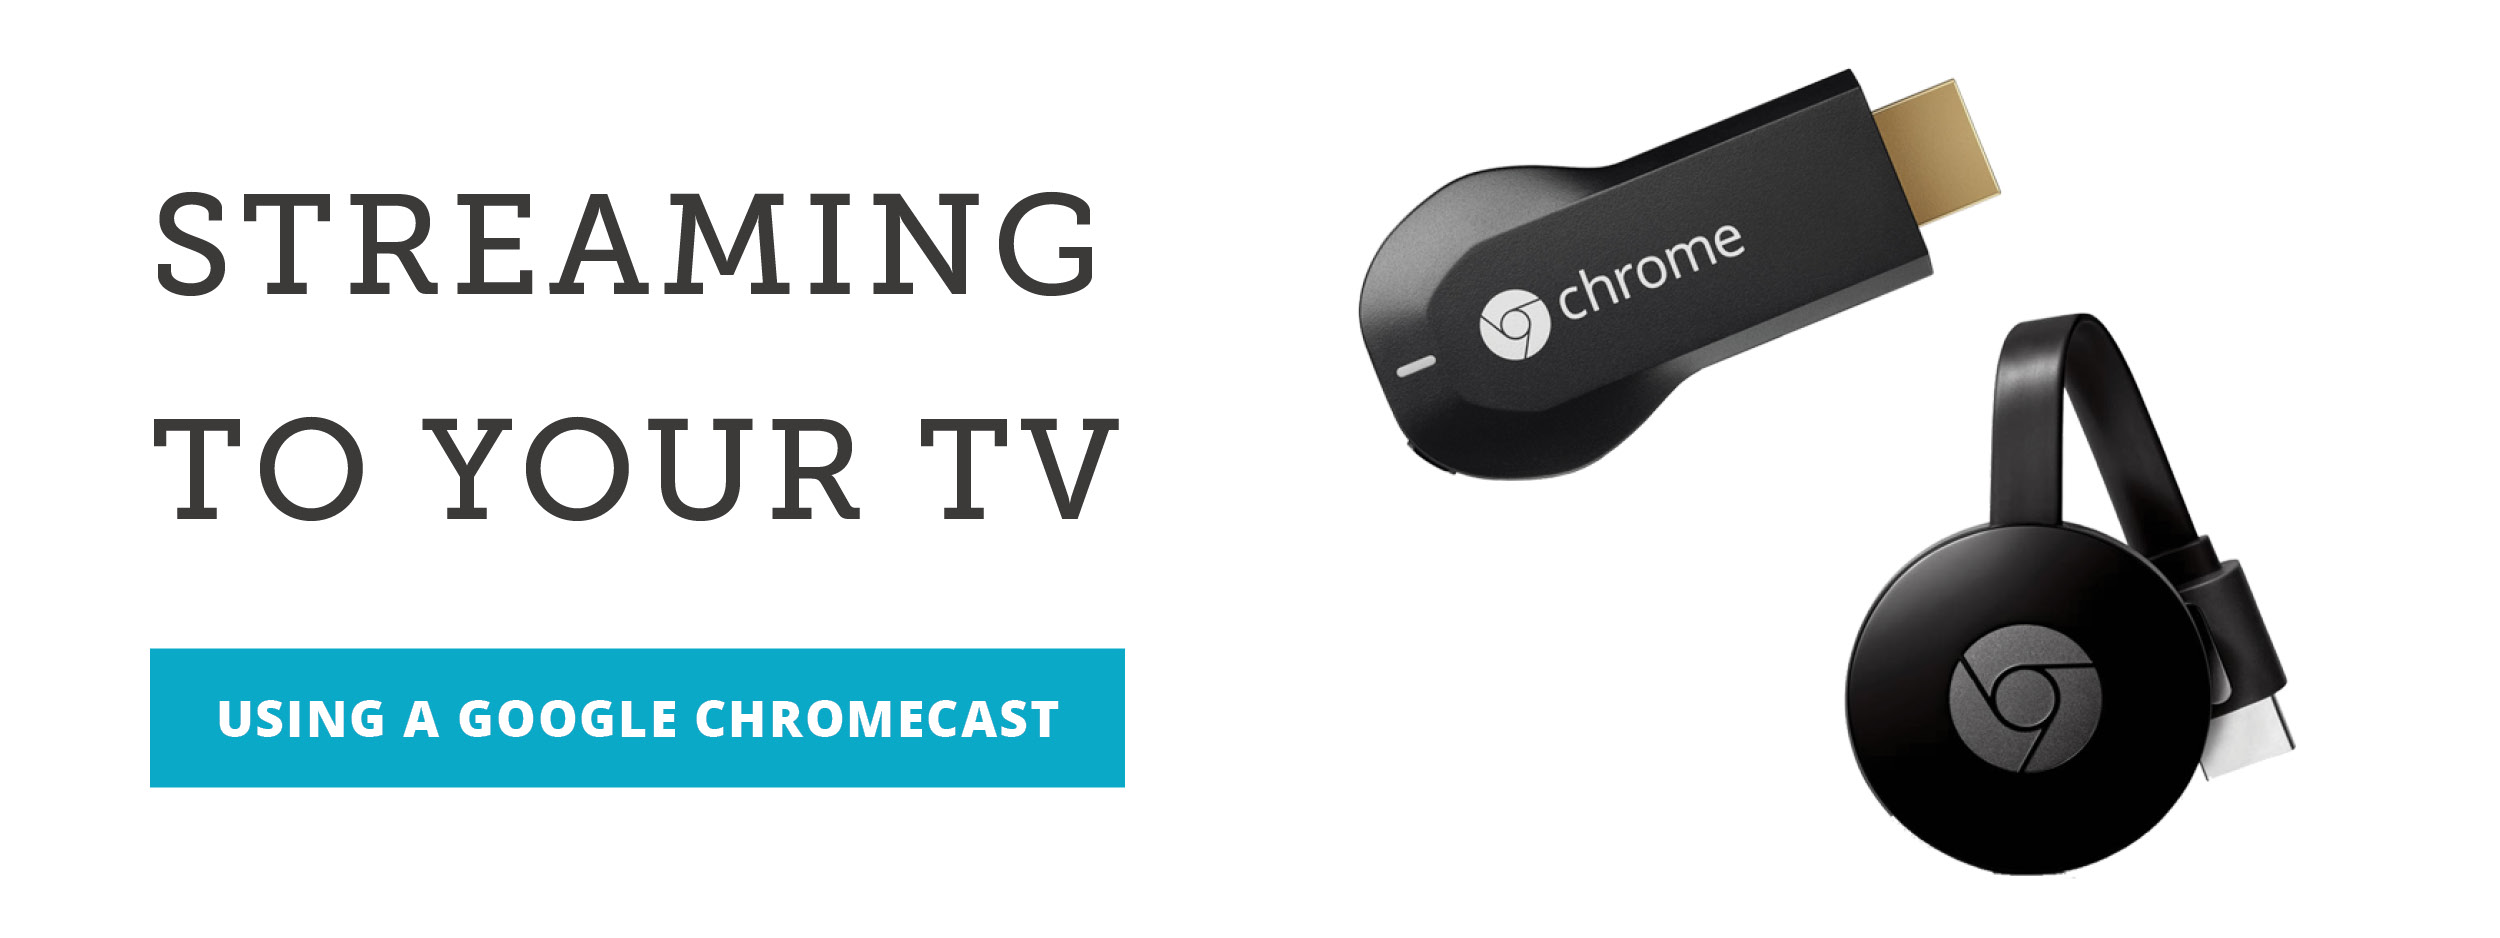 Stream using a Google Chromecast